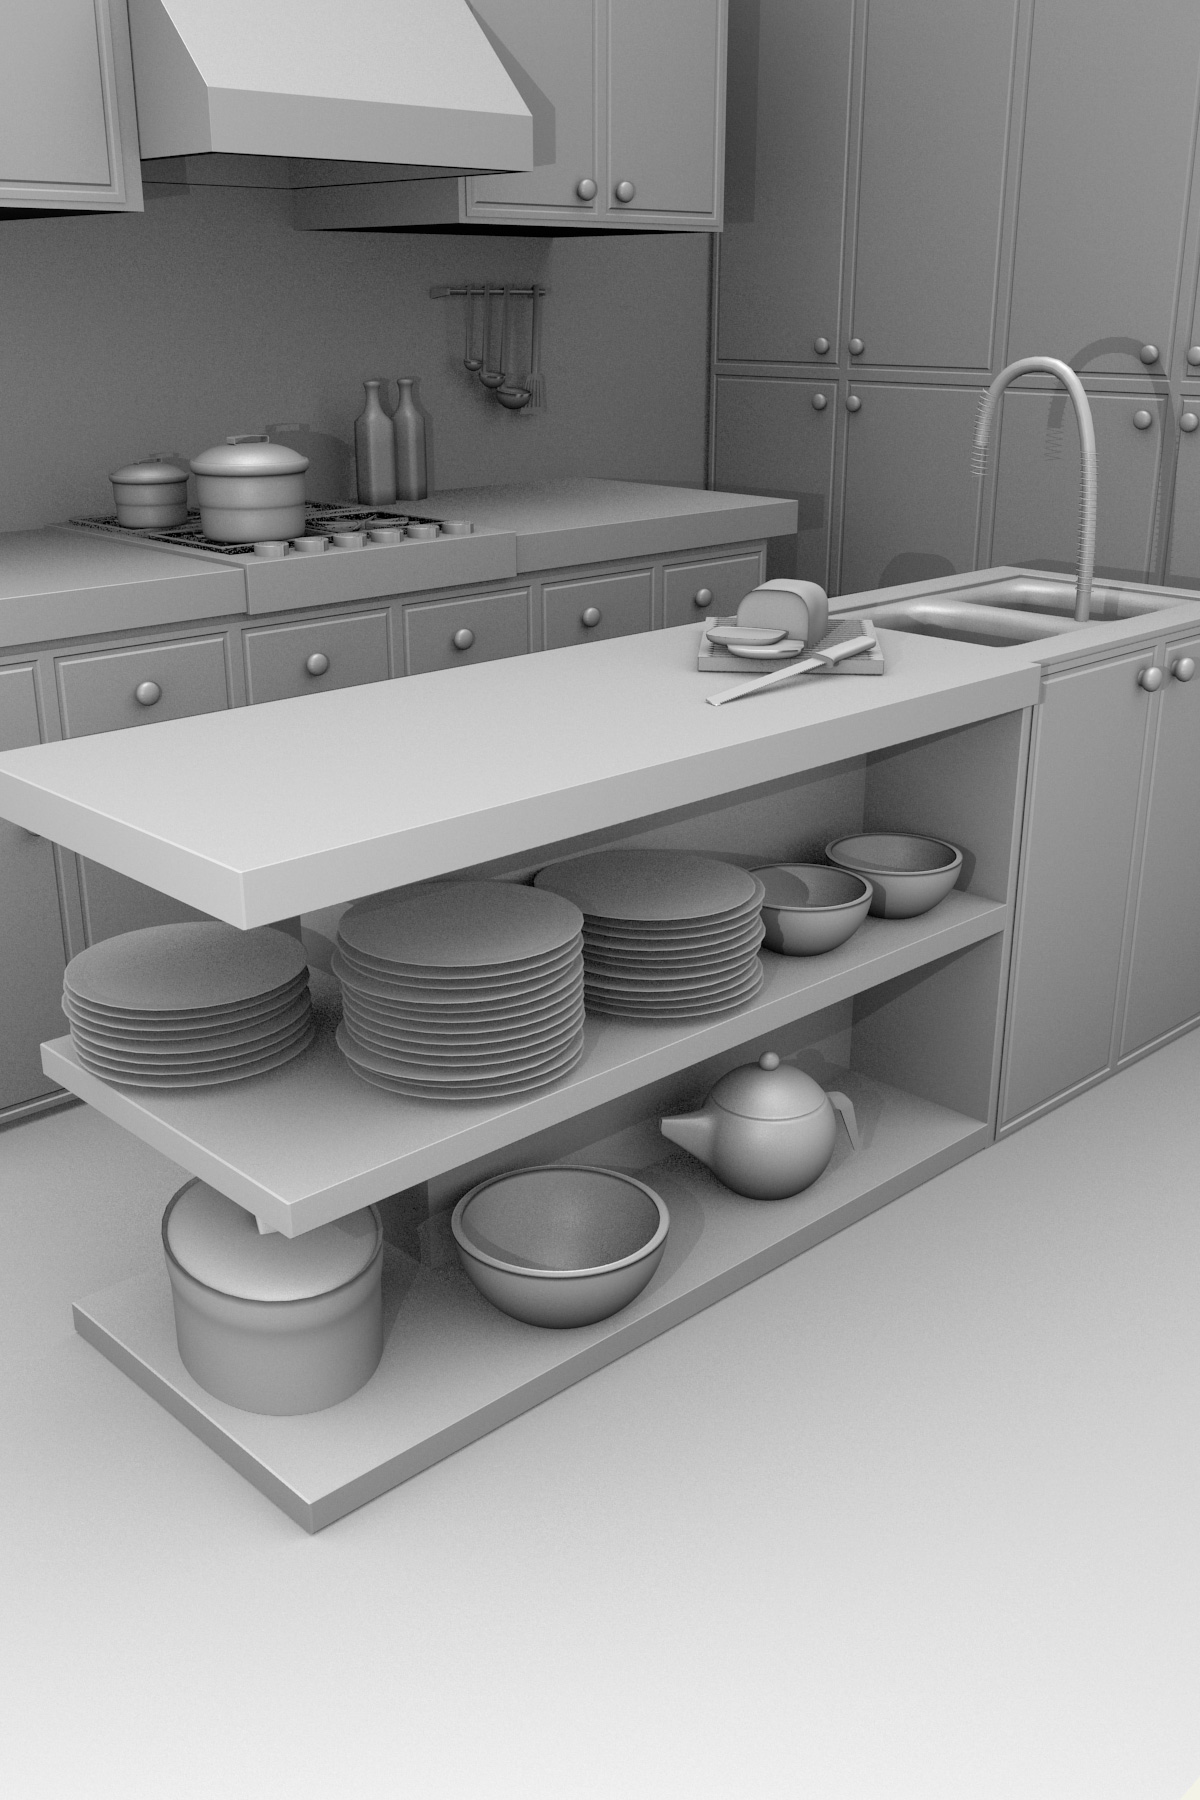 Kitchen 3D Model Blackspike Design Ltd » Blender 3D Kitchen Model